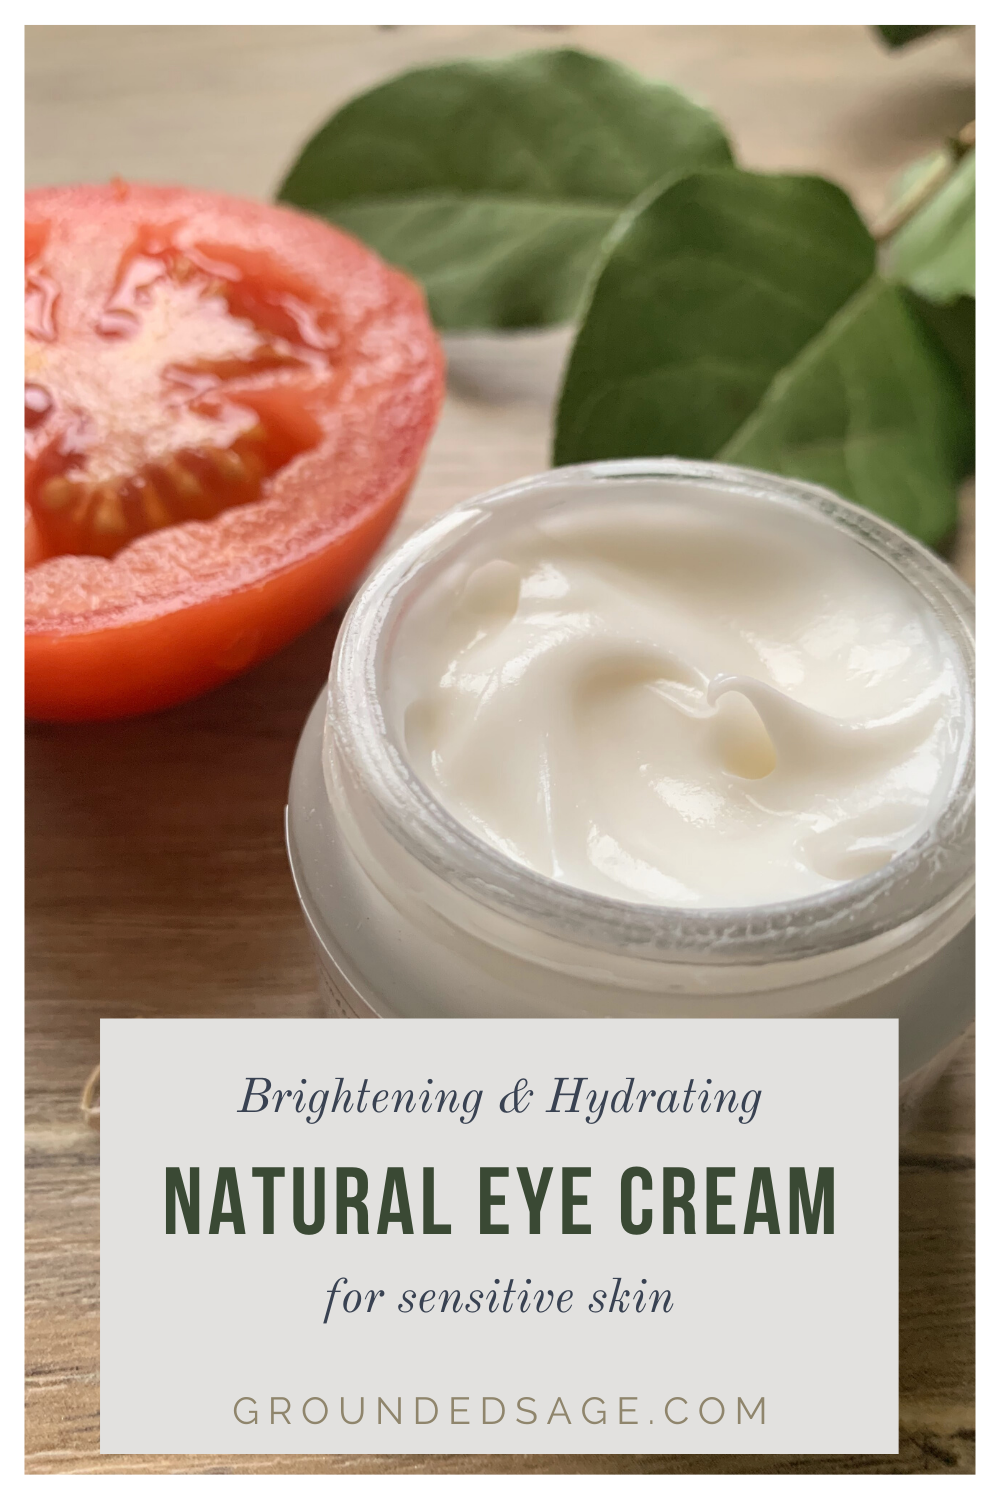 brightening and hydrating natural under eye cream for sensitive skin. Clean skincare products for healthy skin care routines.